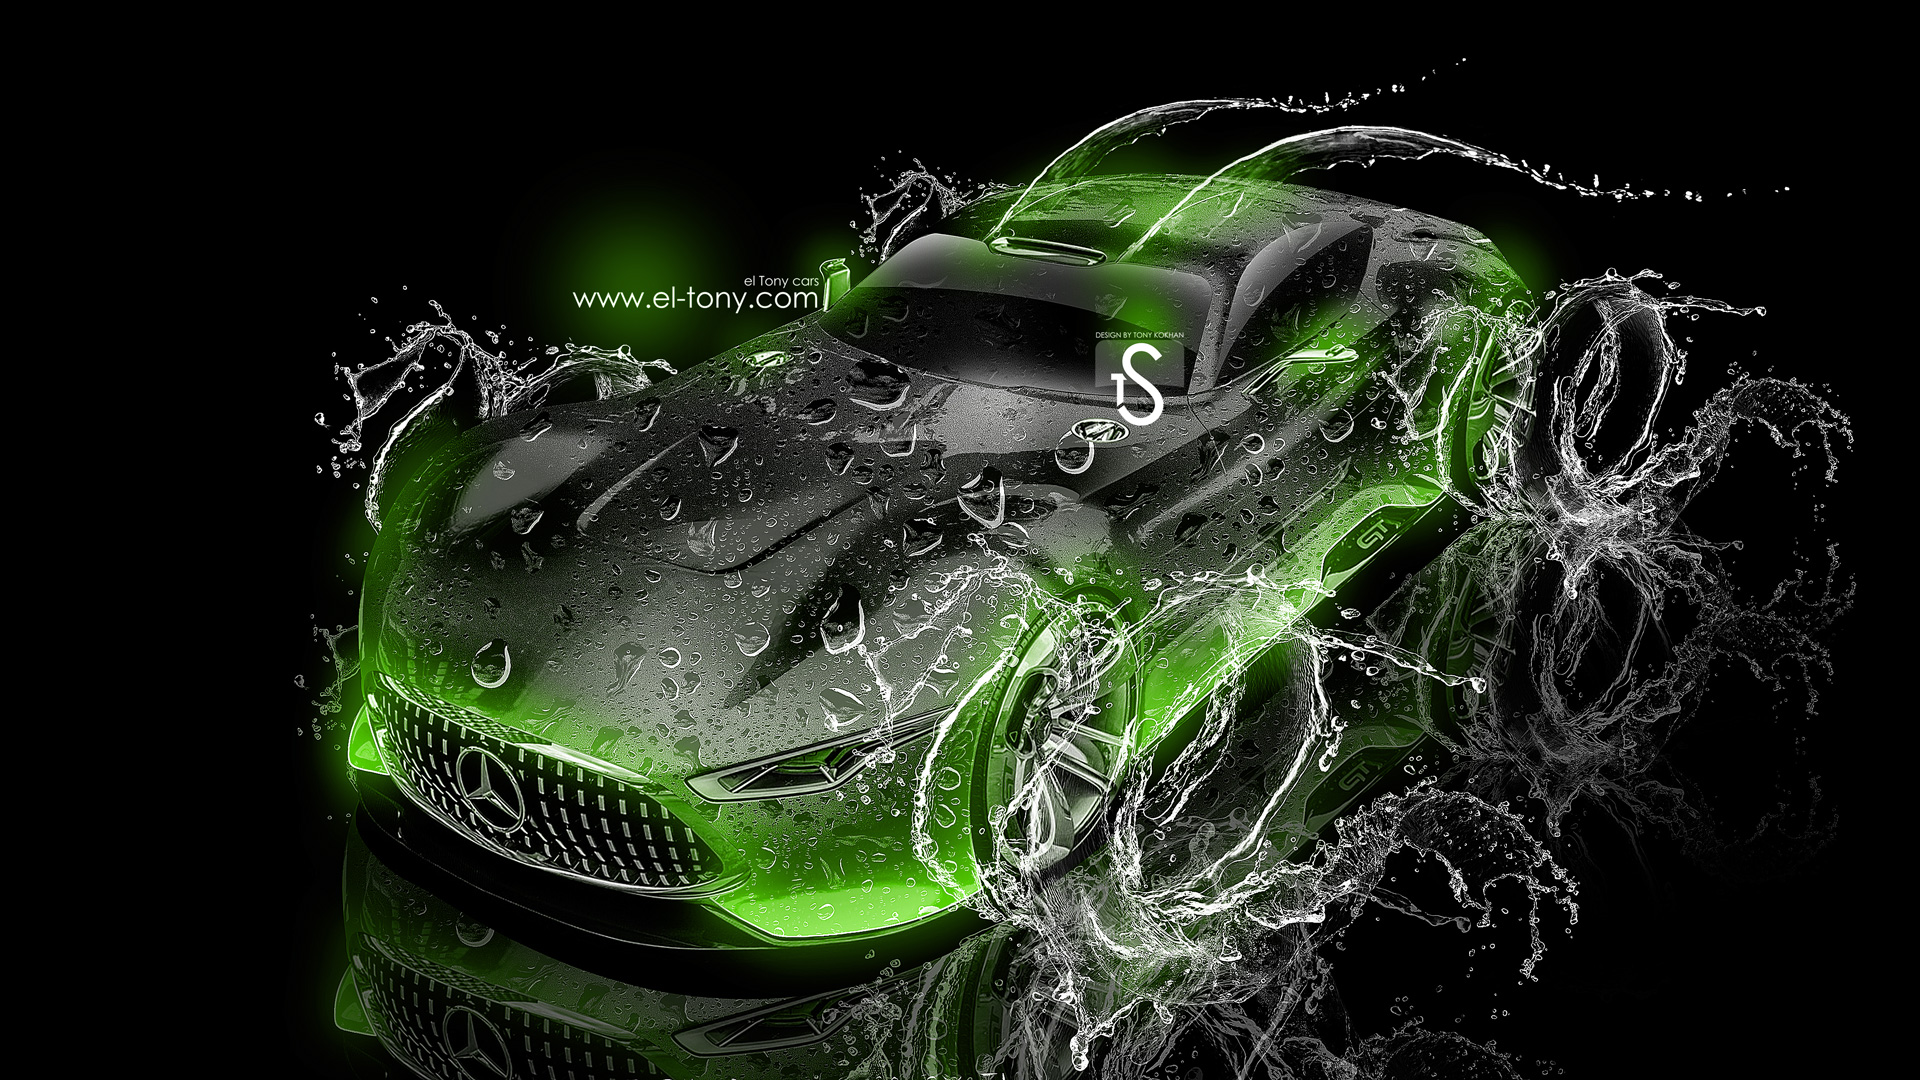 Mercedes Benz Vision Gran Turismo V2 Water Car 2013 El Tony